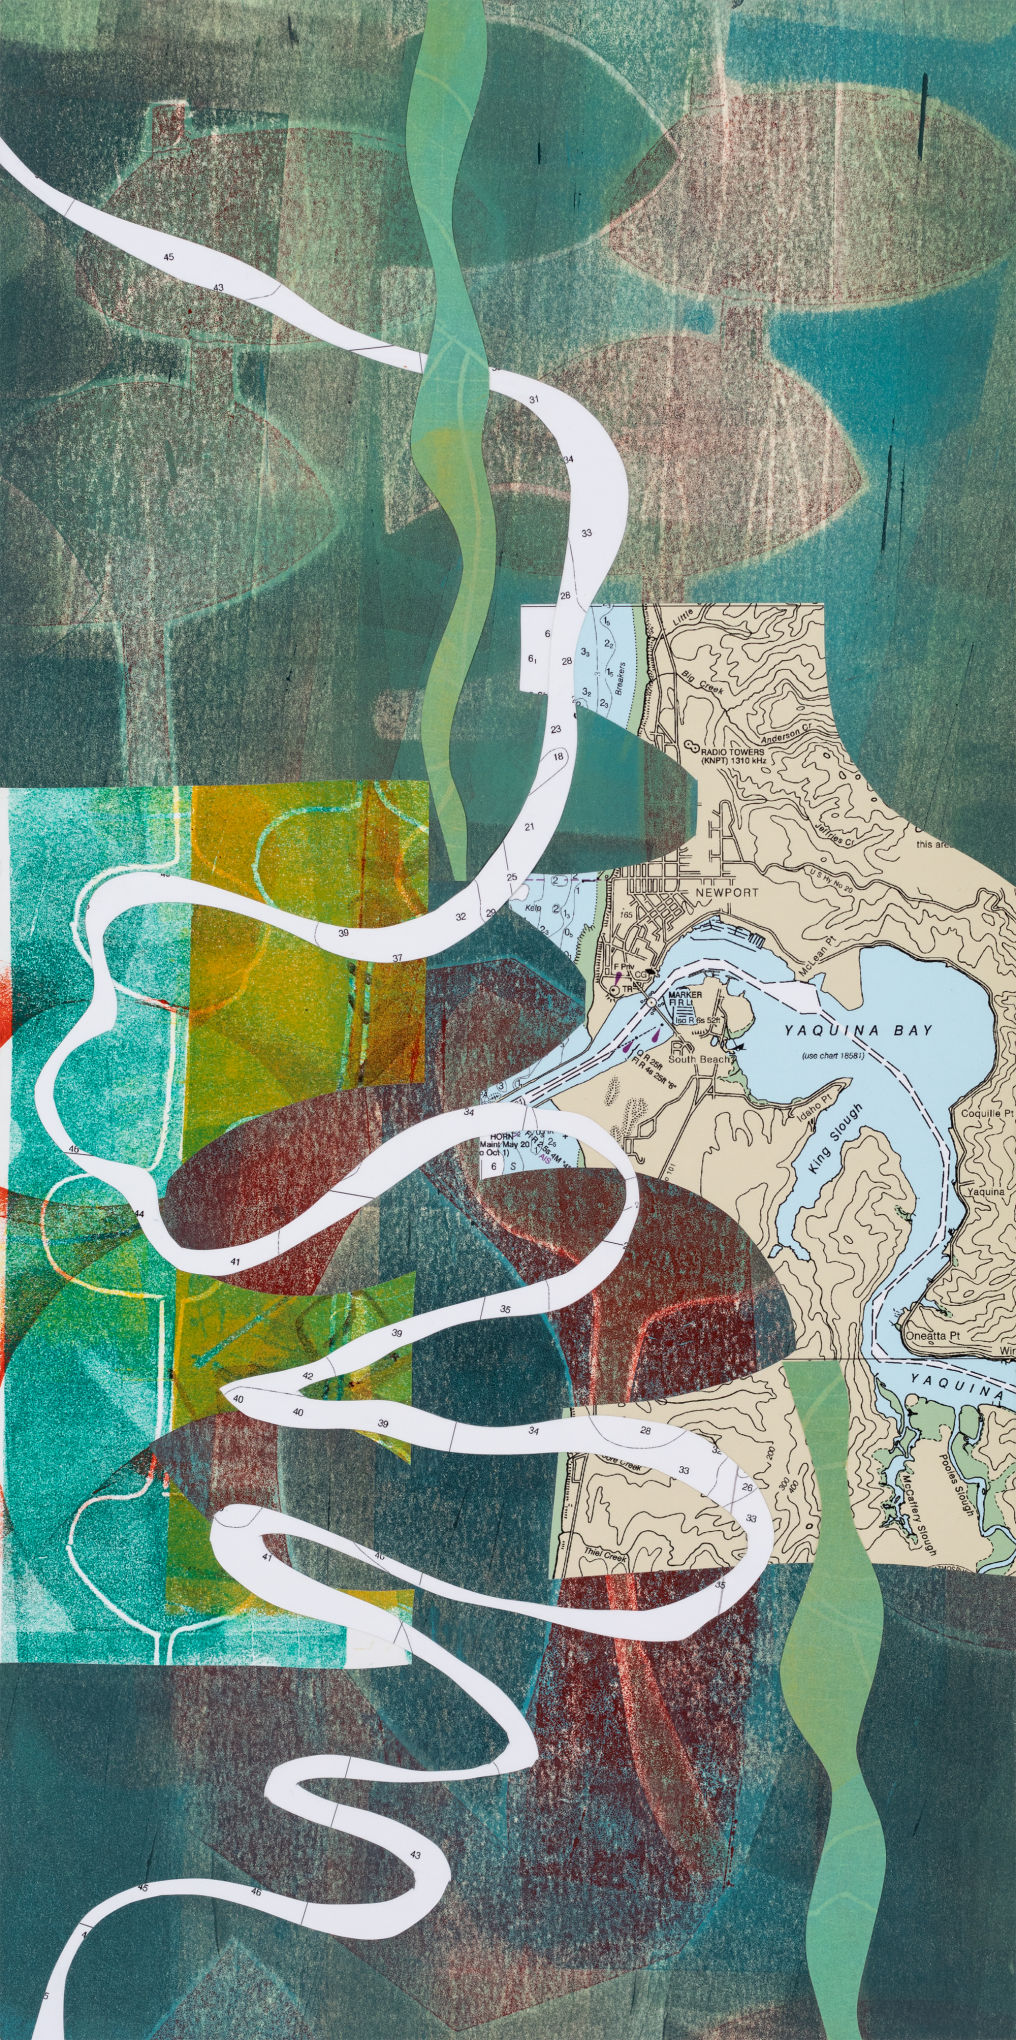 ode.to.the.tides.Baker Marcy-Yaquina Bay-collage panel-20x10-475-2019.jpg